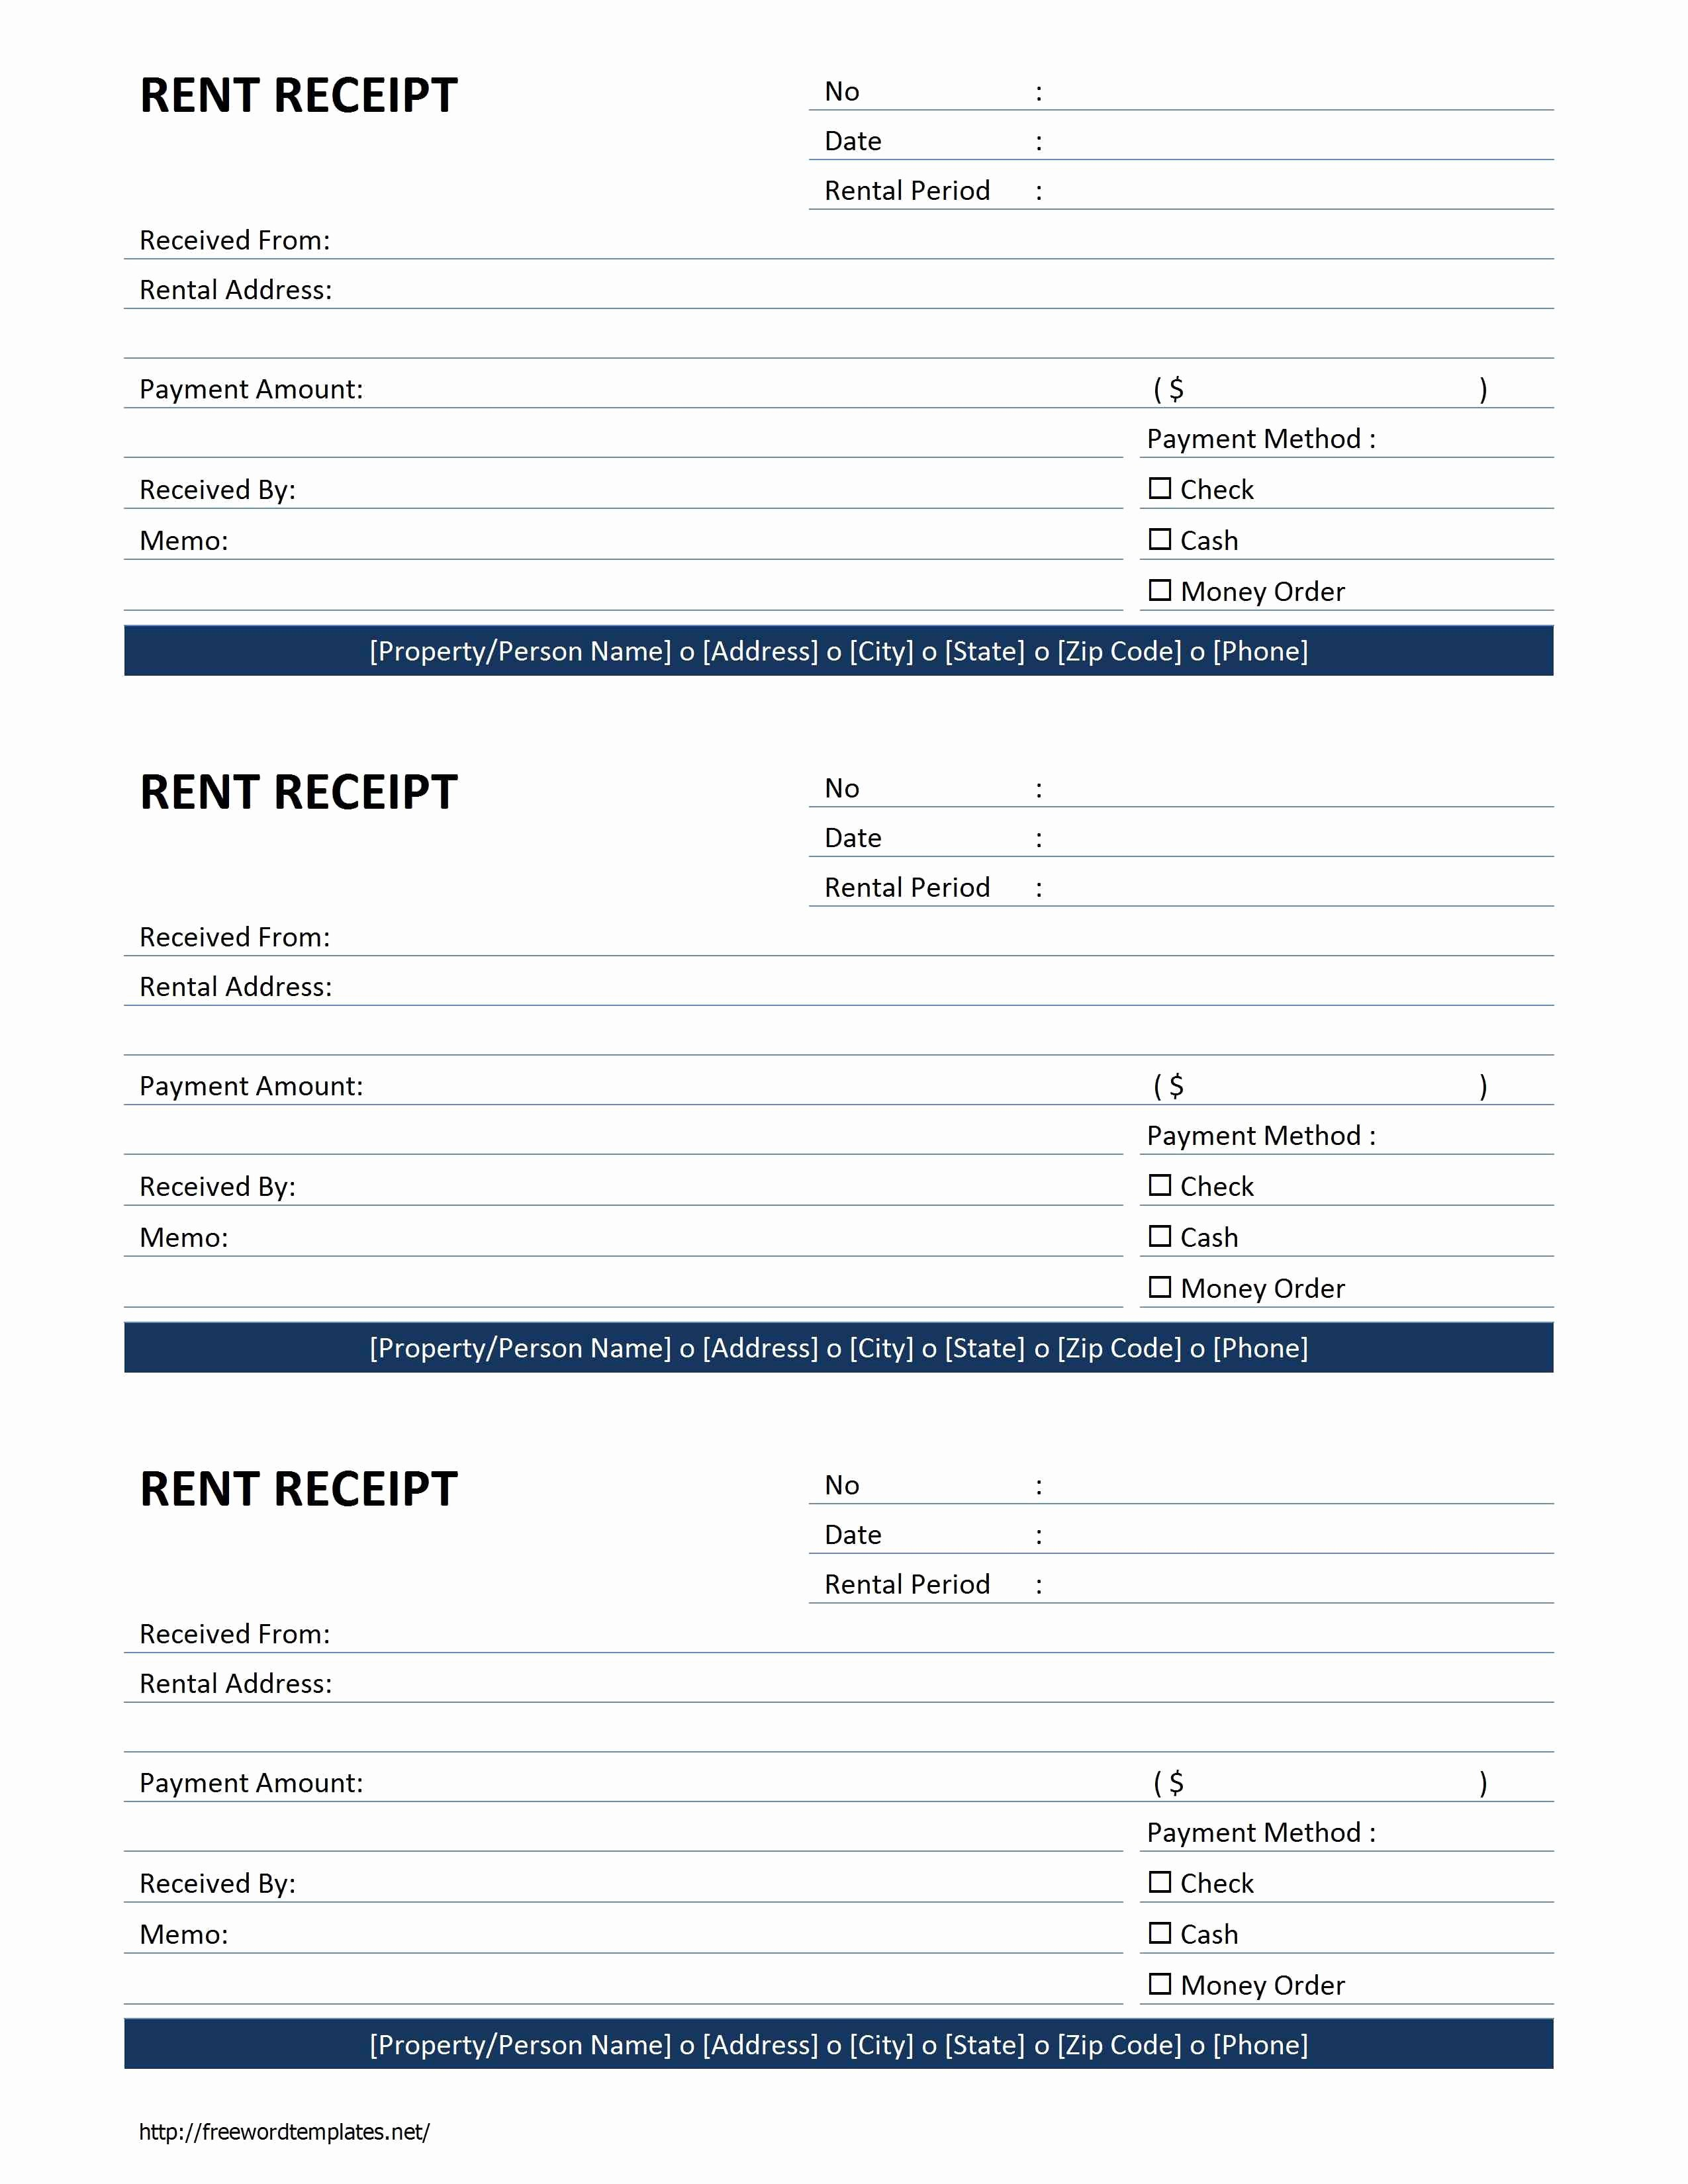 Rental Receipt Template Free Luxury Rent Receipt Template